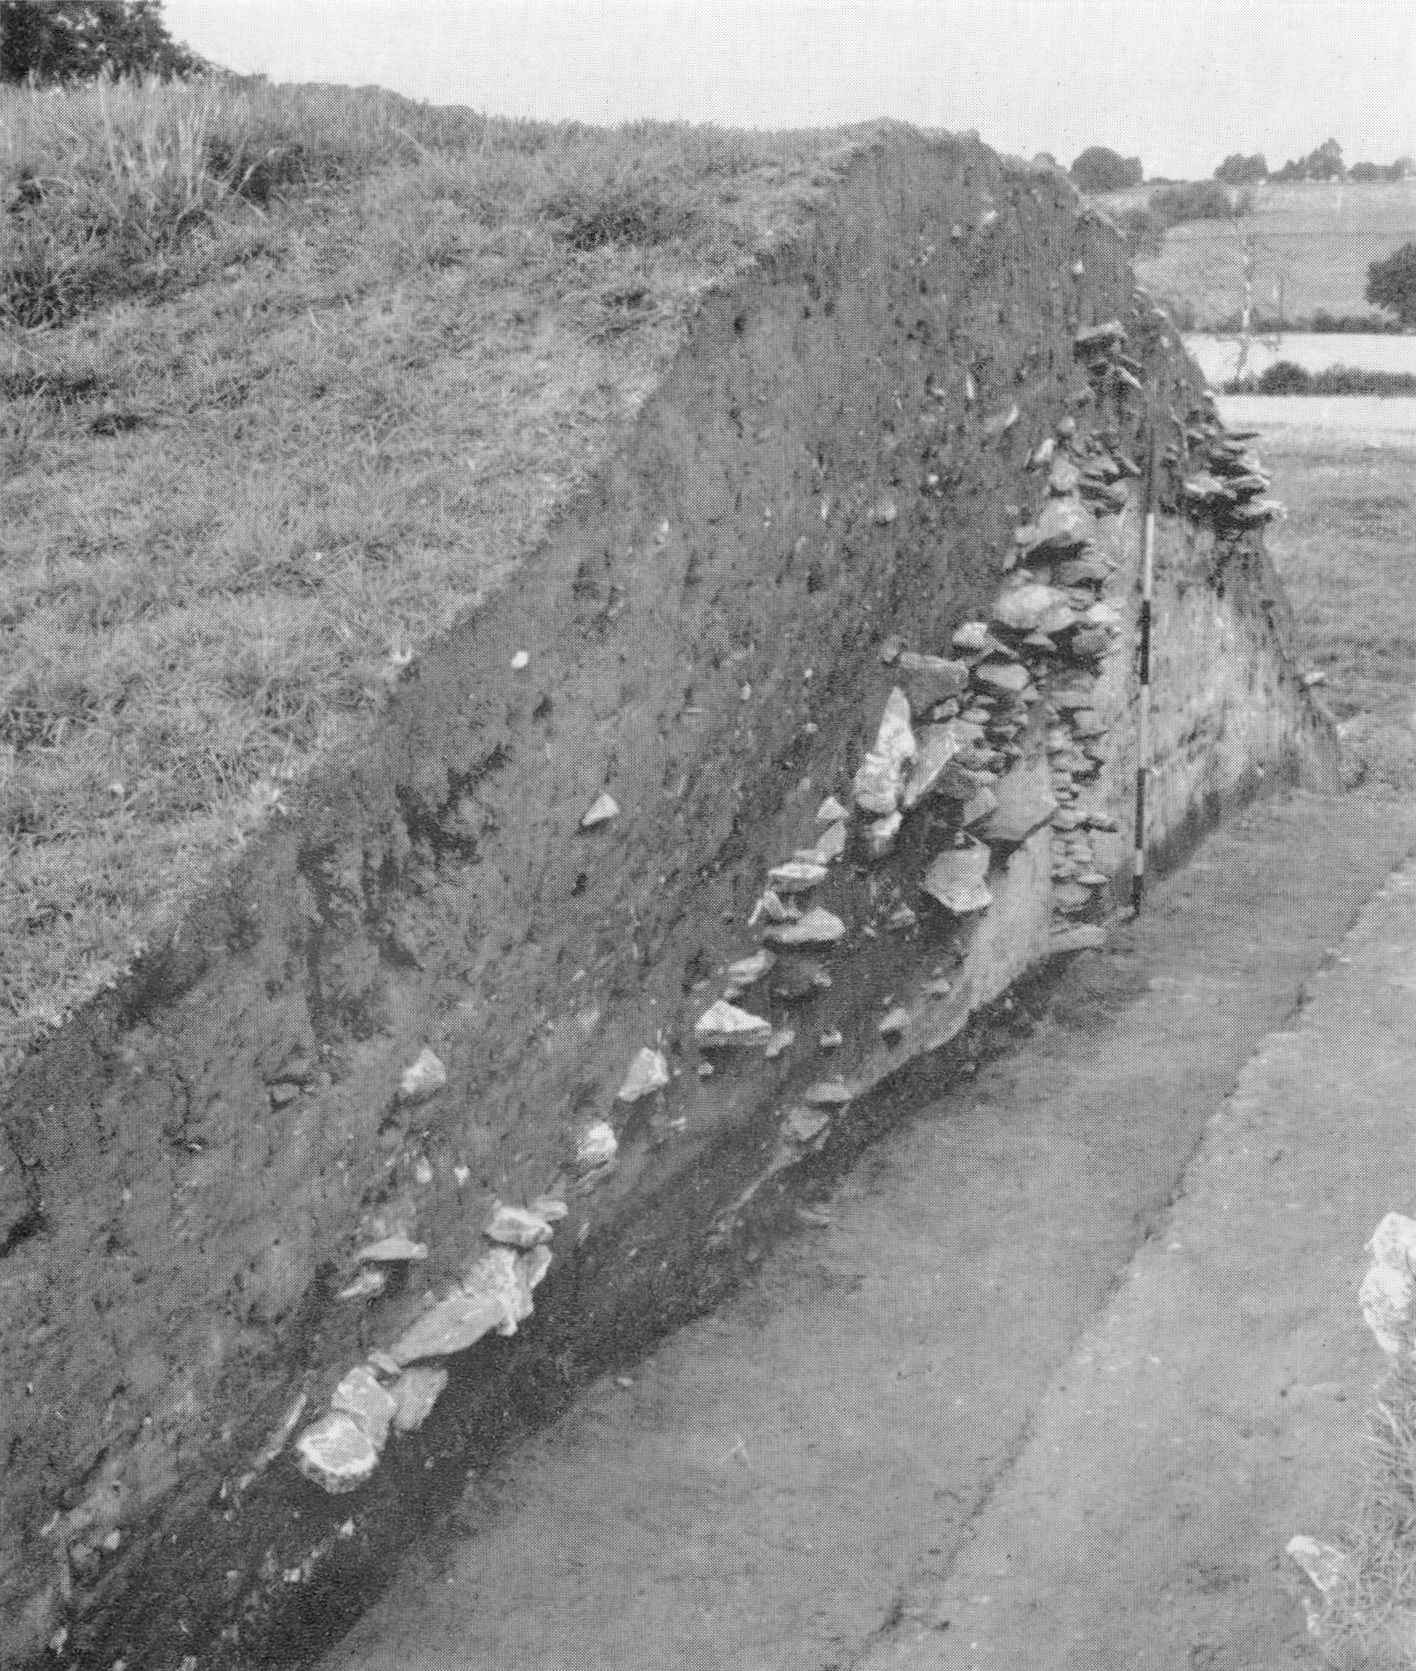 A photograph of a grassy mound which has been cut into to reveal a layer of stones underneath the surface.